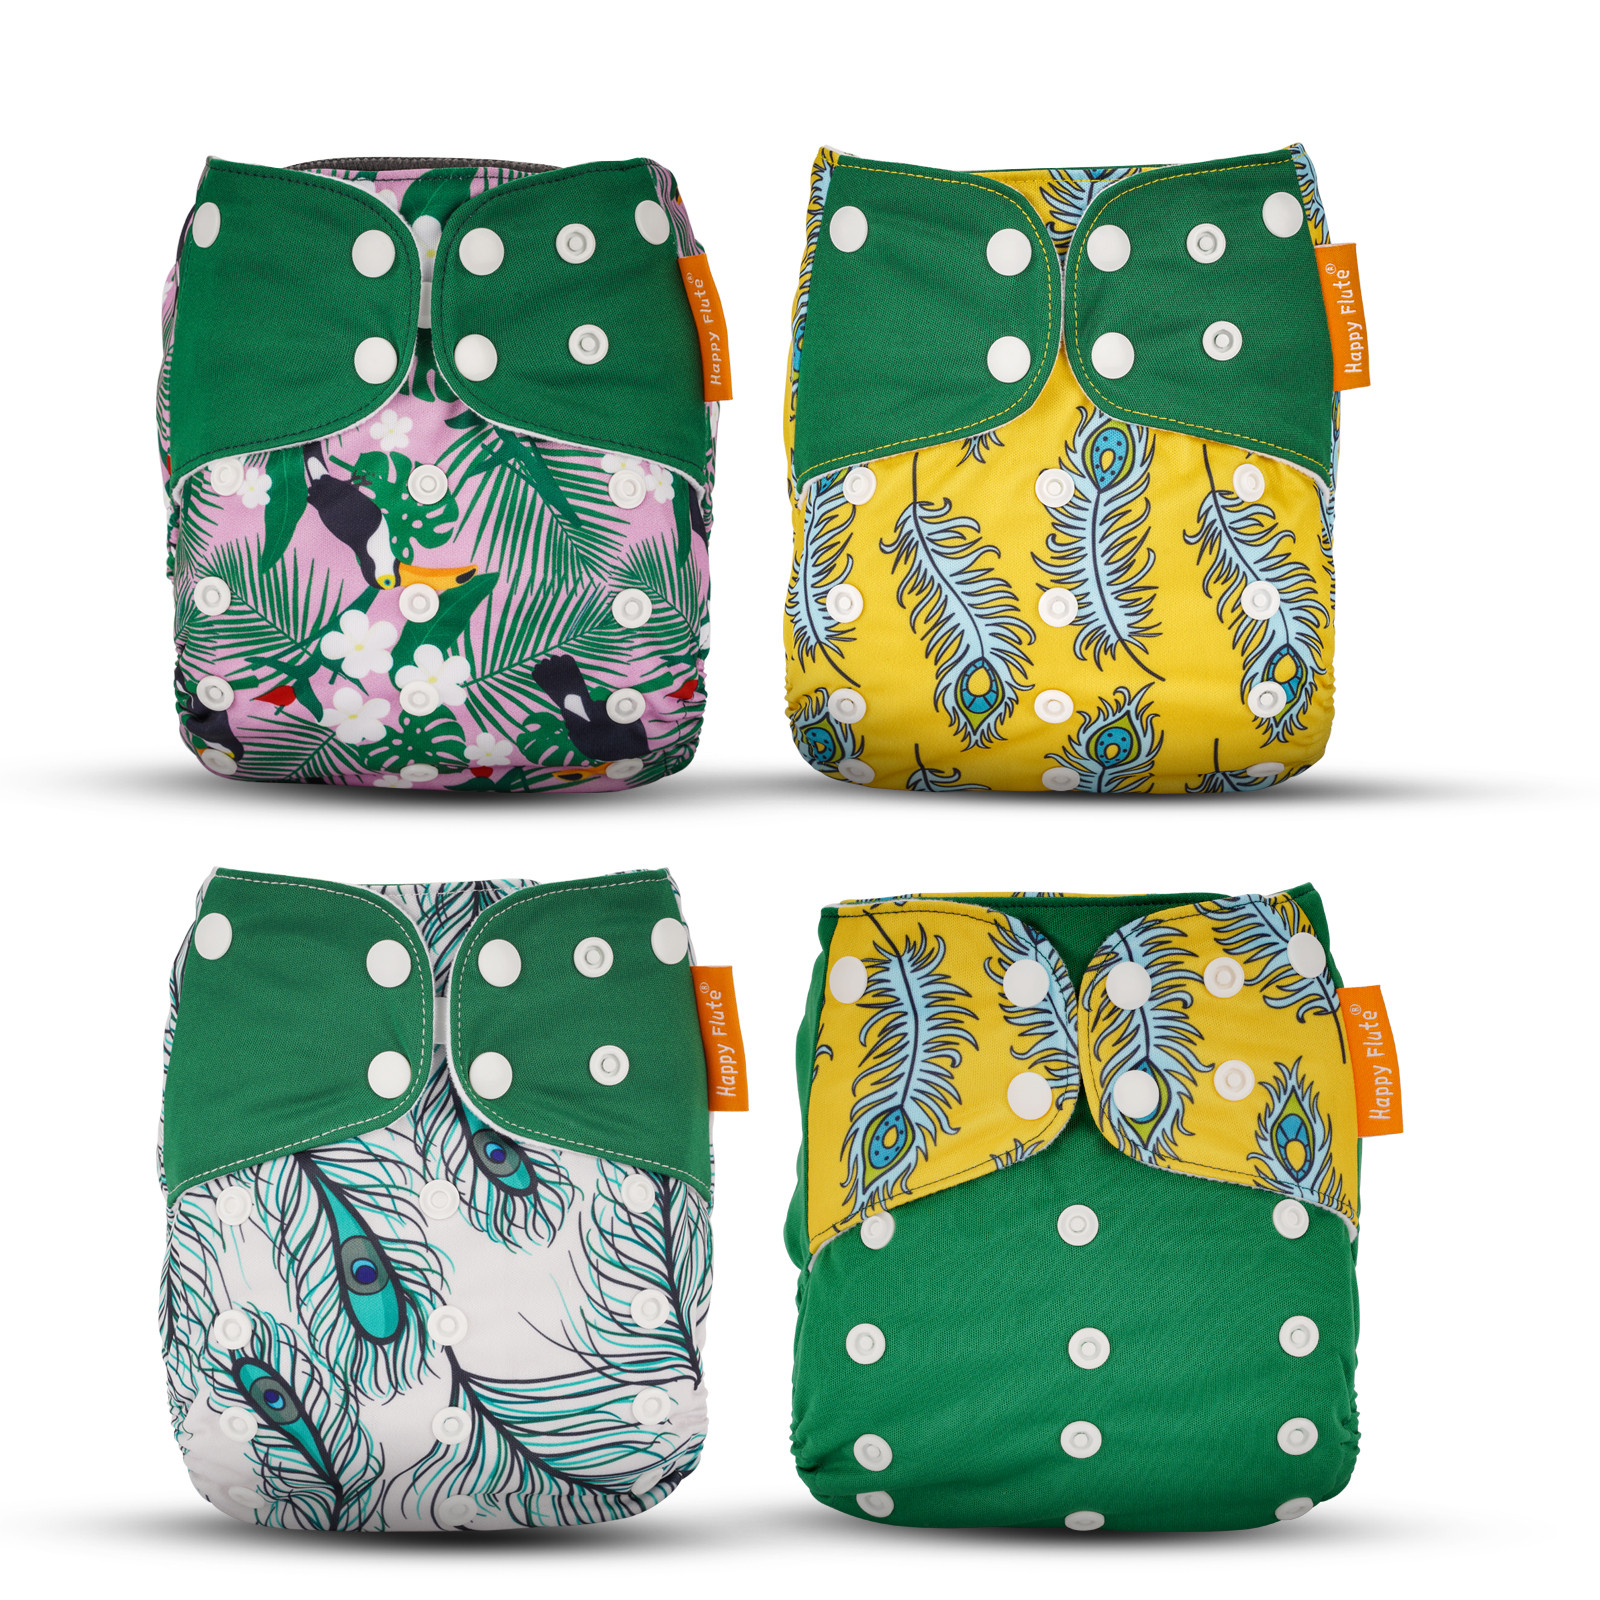 MENGS®  4 Pack Cloth Diapers Adjustable Washable And Reusable Pocket Diapers For Baby Girls